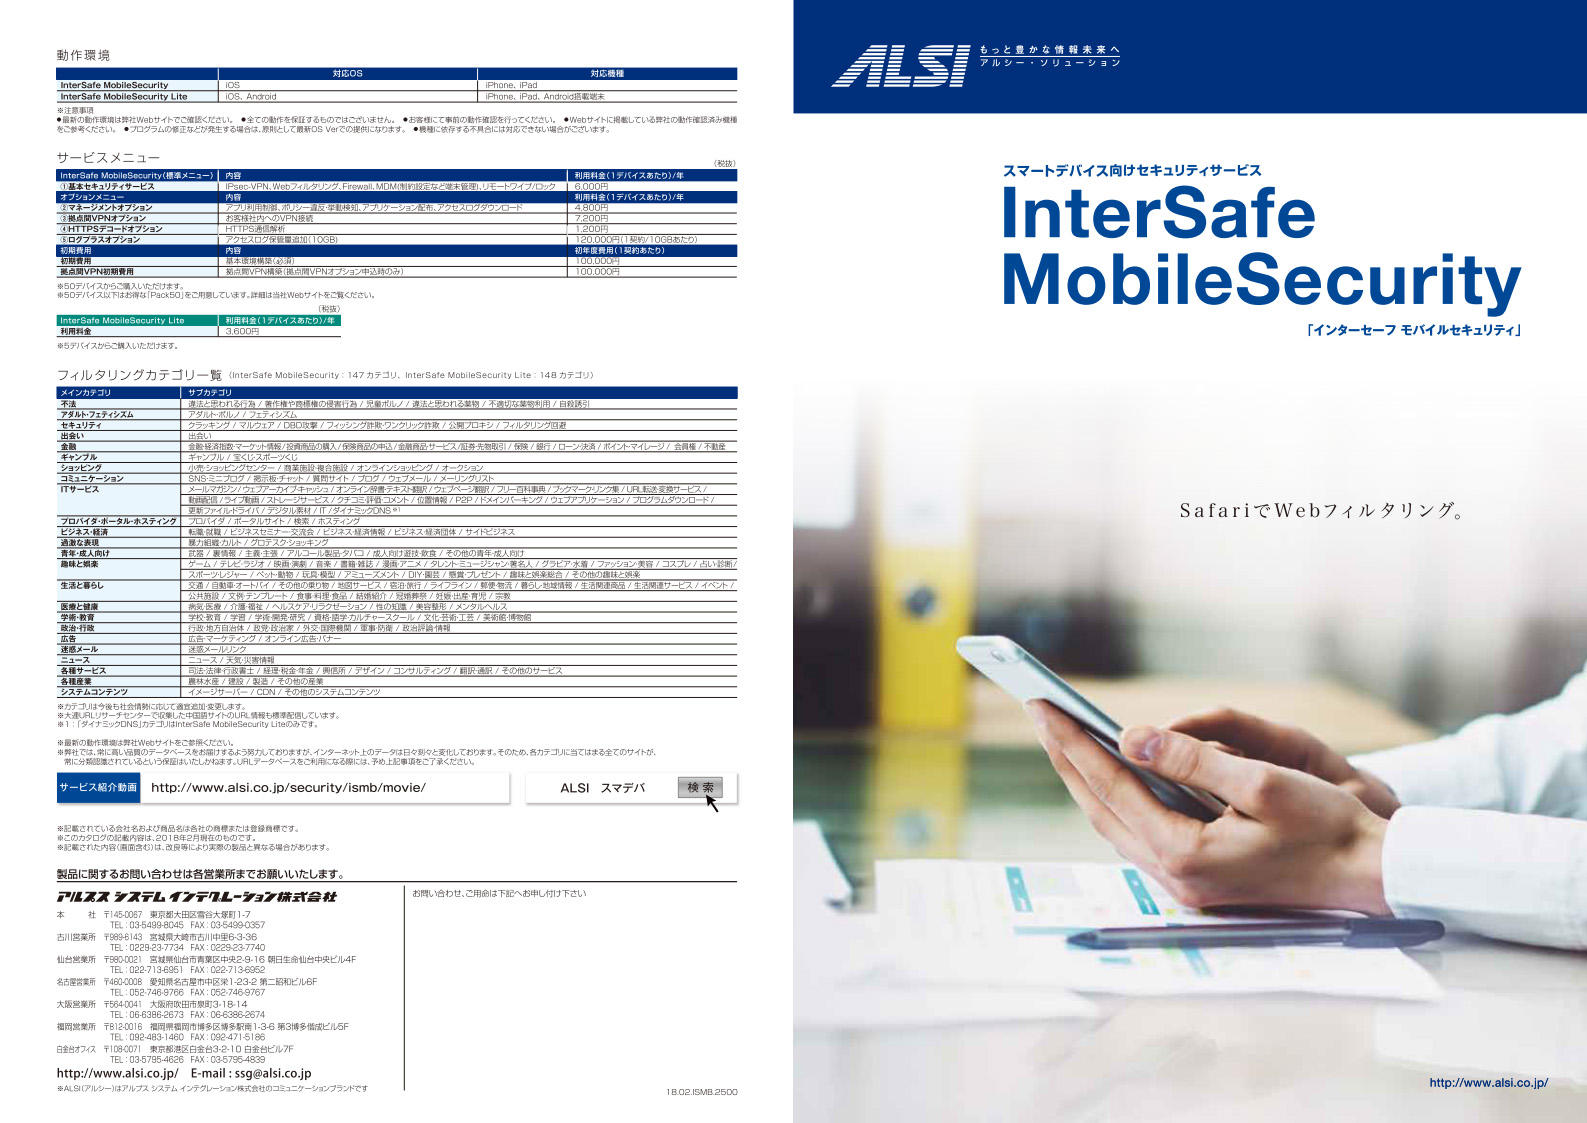 InterSafe MobileSecurity / Lite カタログ(A3サイズ印刷用)